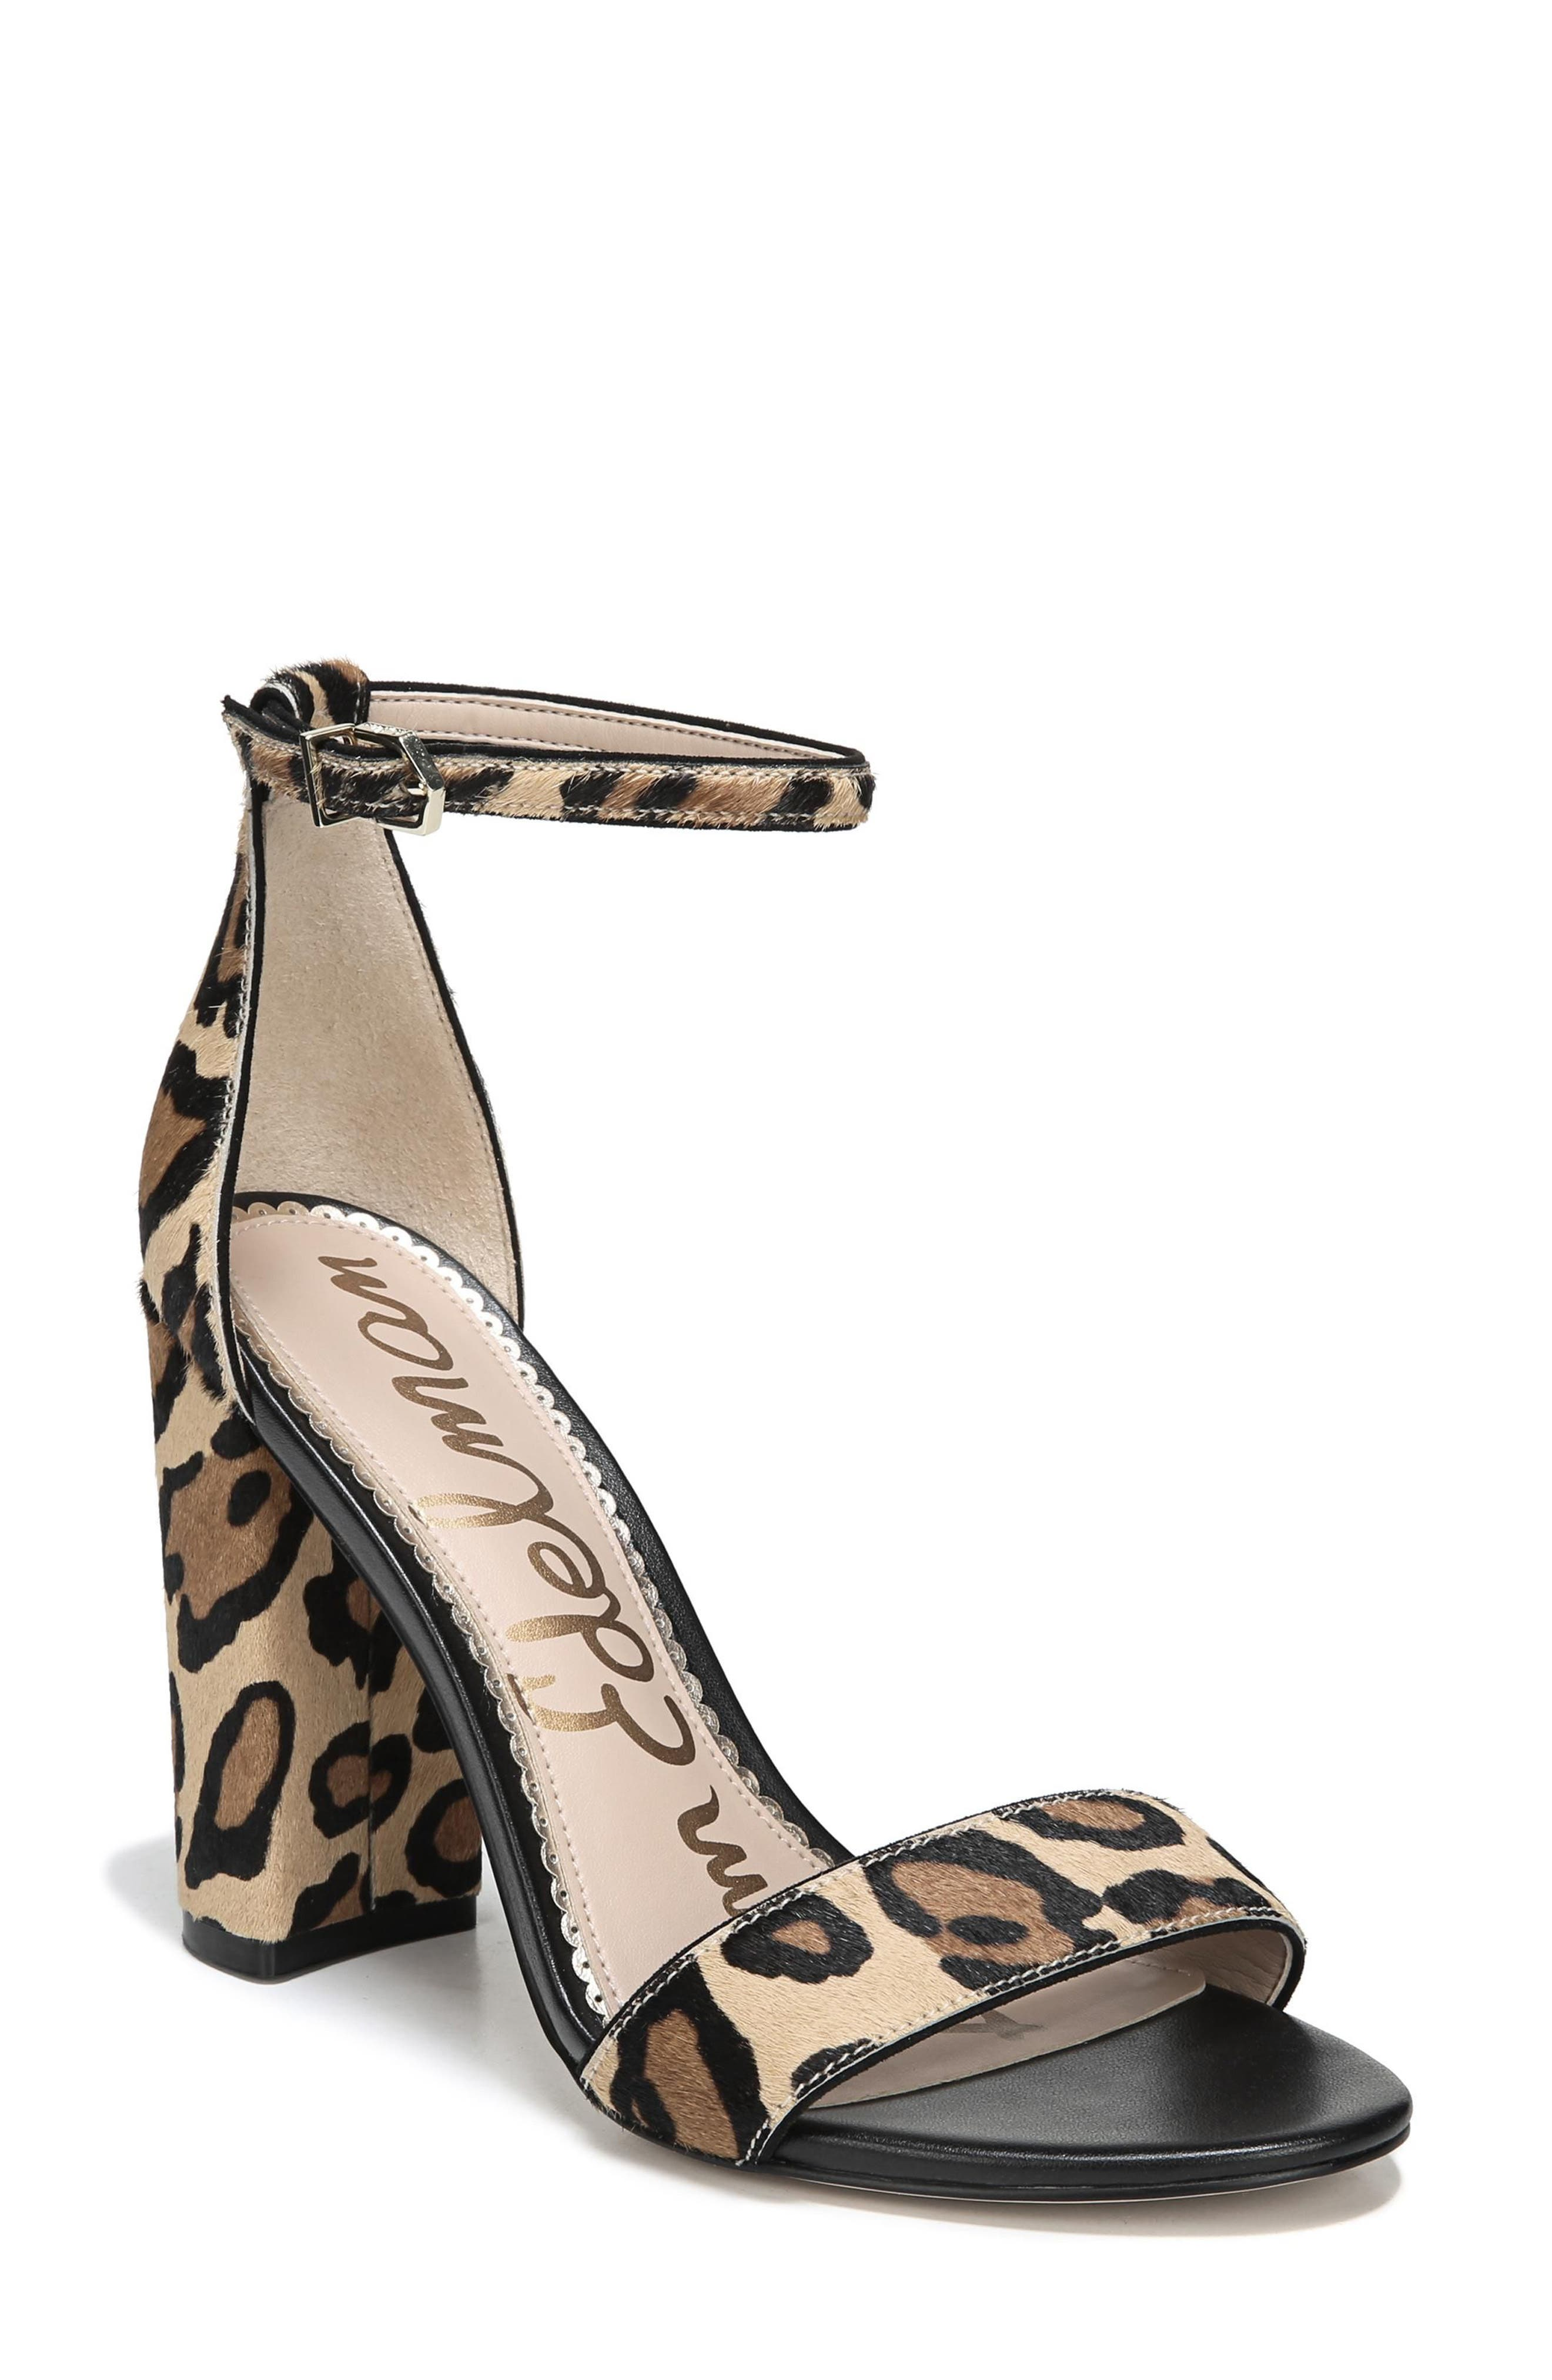 Yaro Ankle Strap Sandal,                         Main,                         color, New Nude Leopard Calf Hair